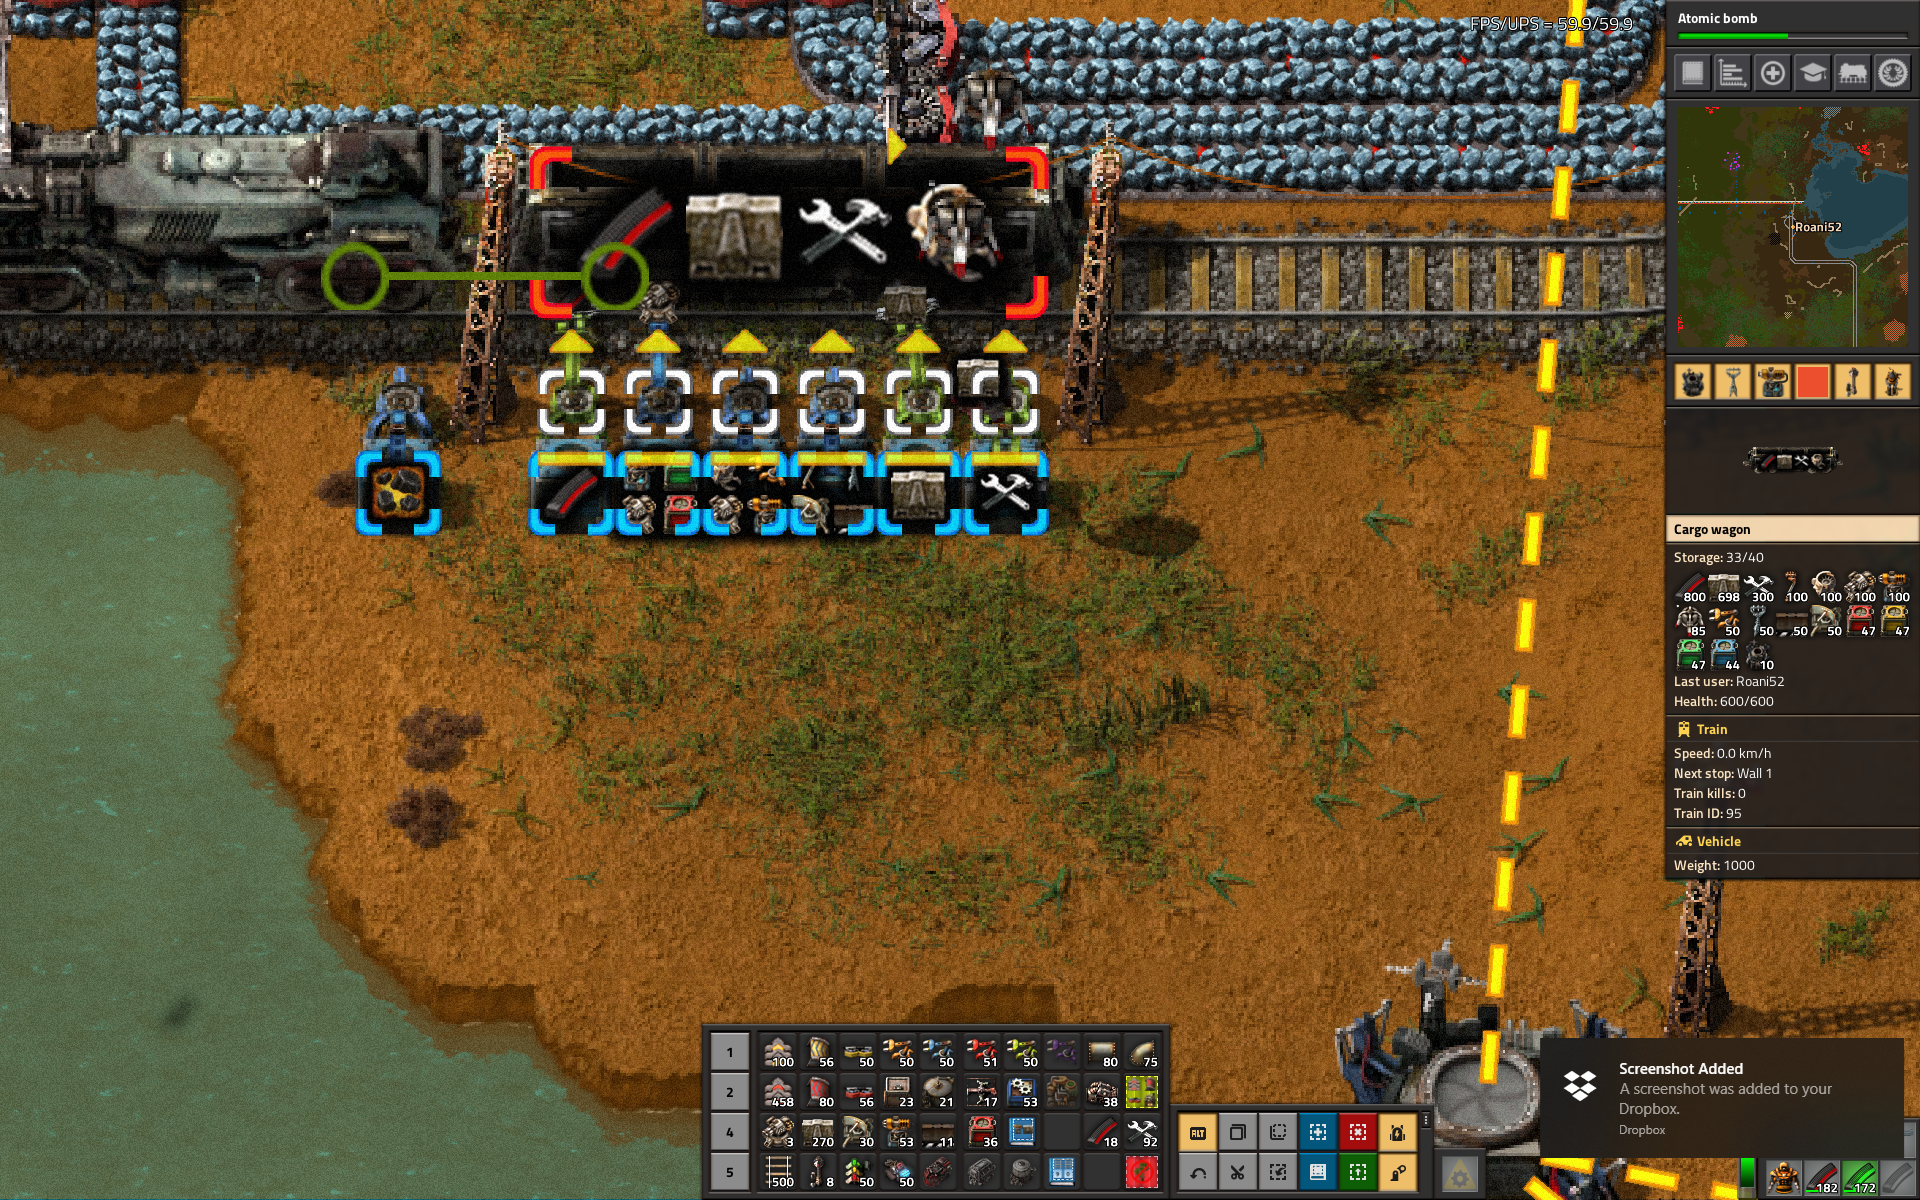 Train being supplied simultaneously at the base station. Train should hold 700 walls, but shows here an inventory of 698.